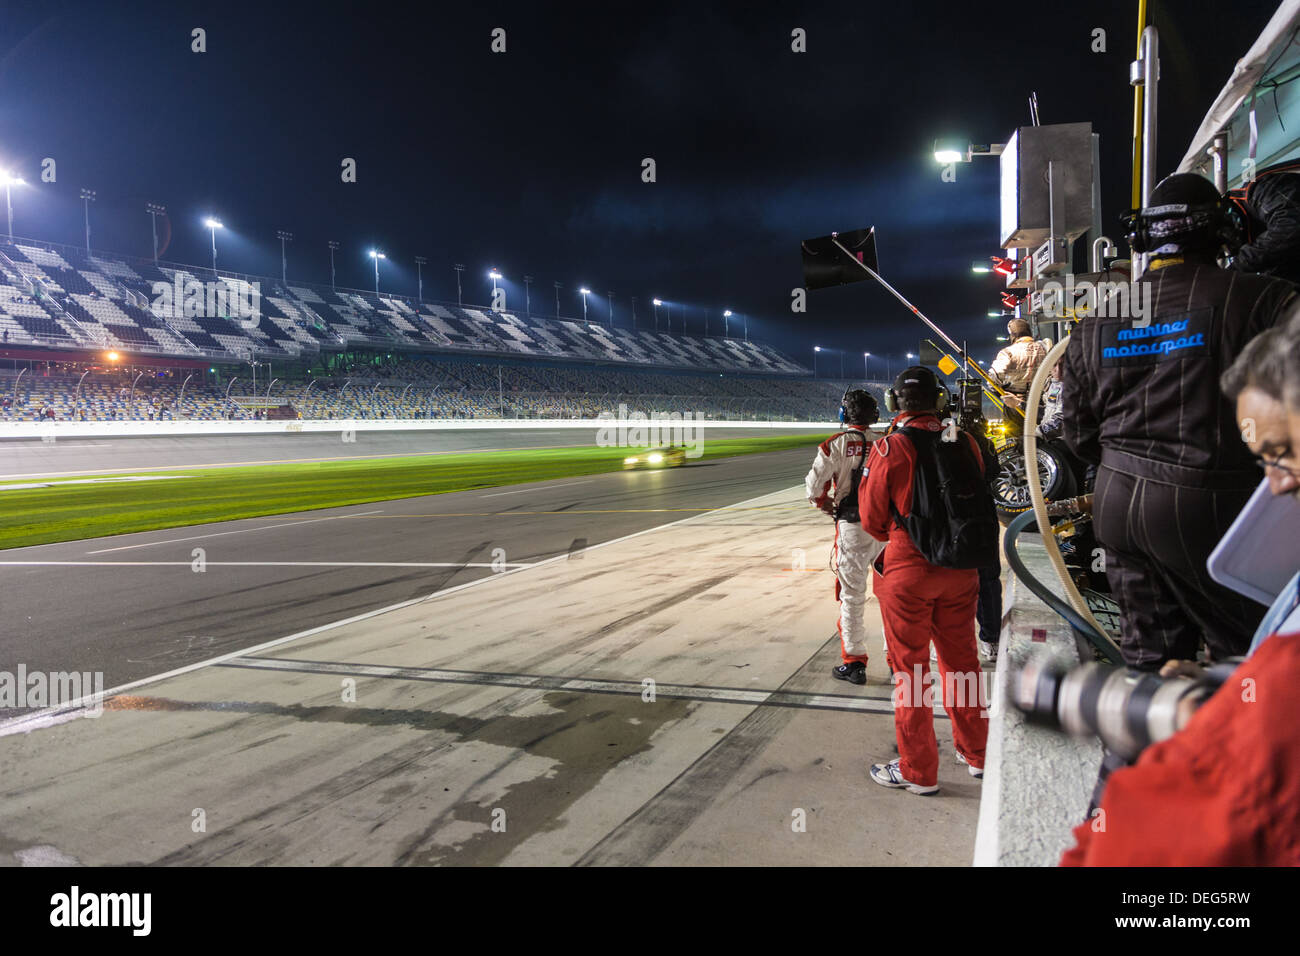 Pit road at night at Daytona International Speedway during the 2012 Rolex 24 at Daytona, Florida - Stock Image